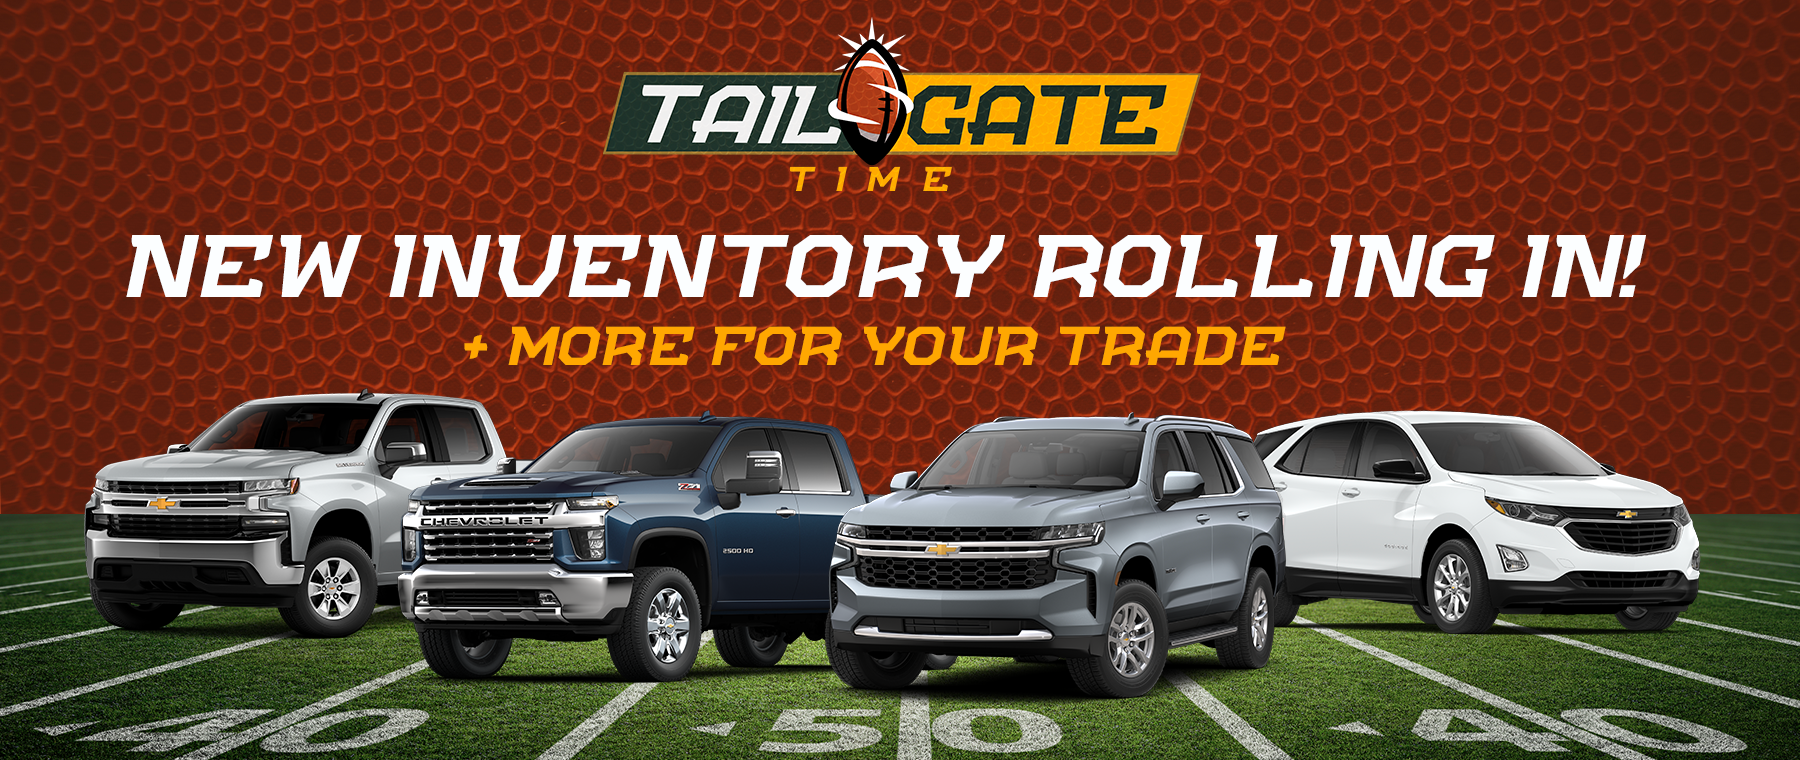 Tailgate Time - New Inventory at Ryan Chevy in Monroe, LA